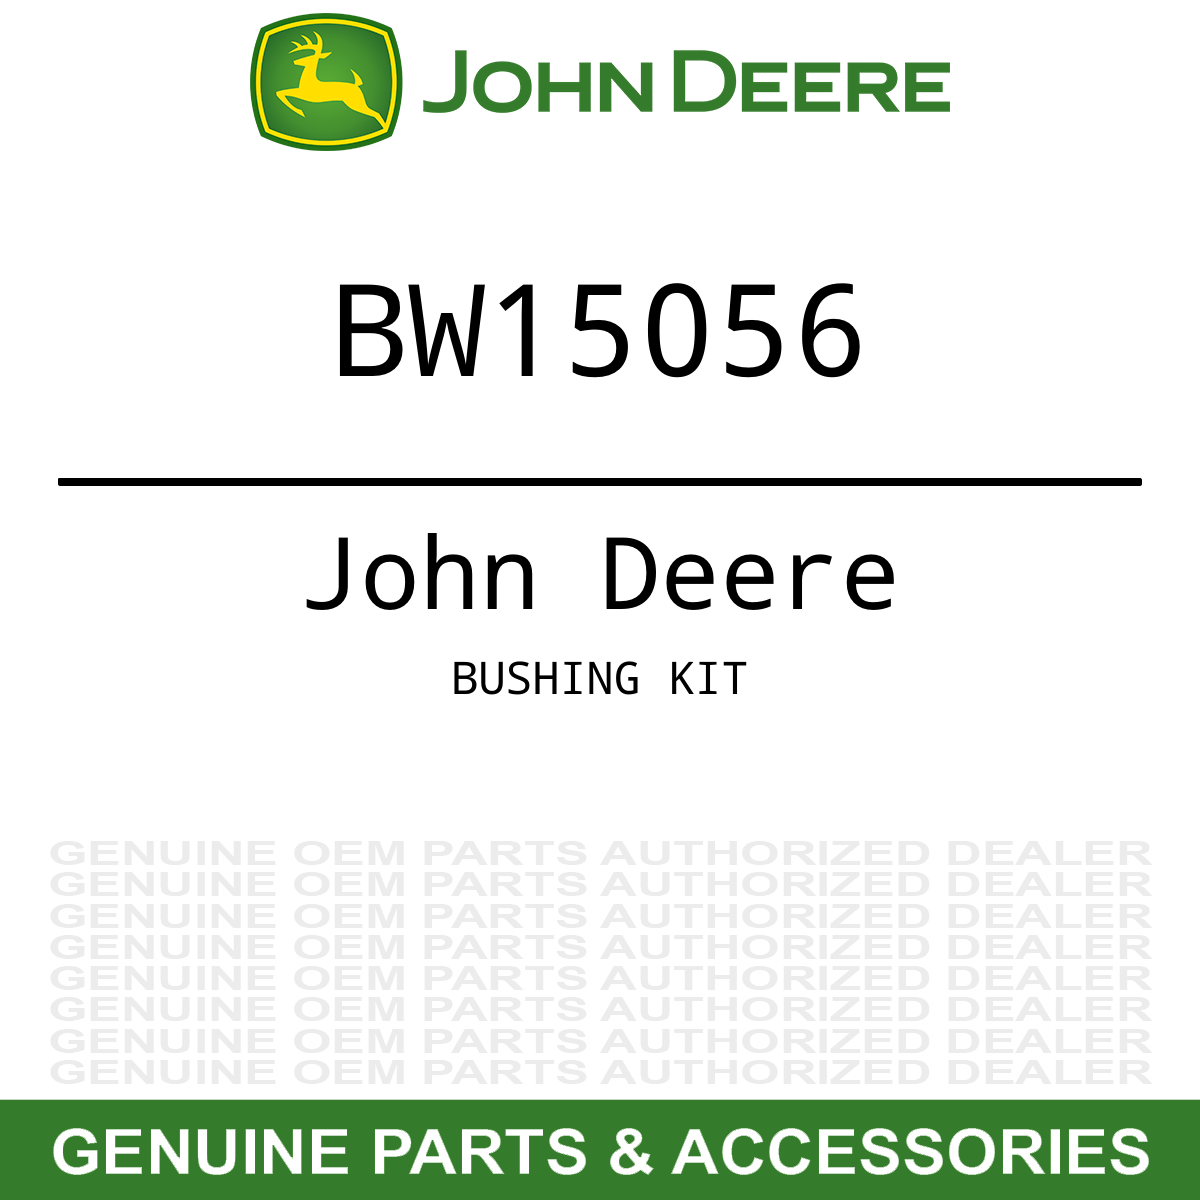 John Deere D160 Wiring Harness Simple Diagram Oem Loader Ballast Extension Bushing Kit D120 D170 Lawn Mower Manuals